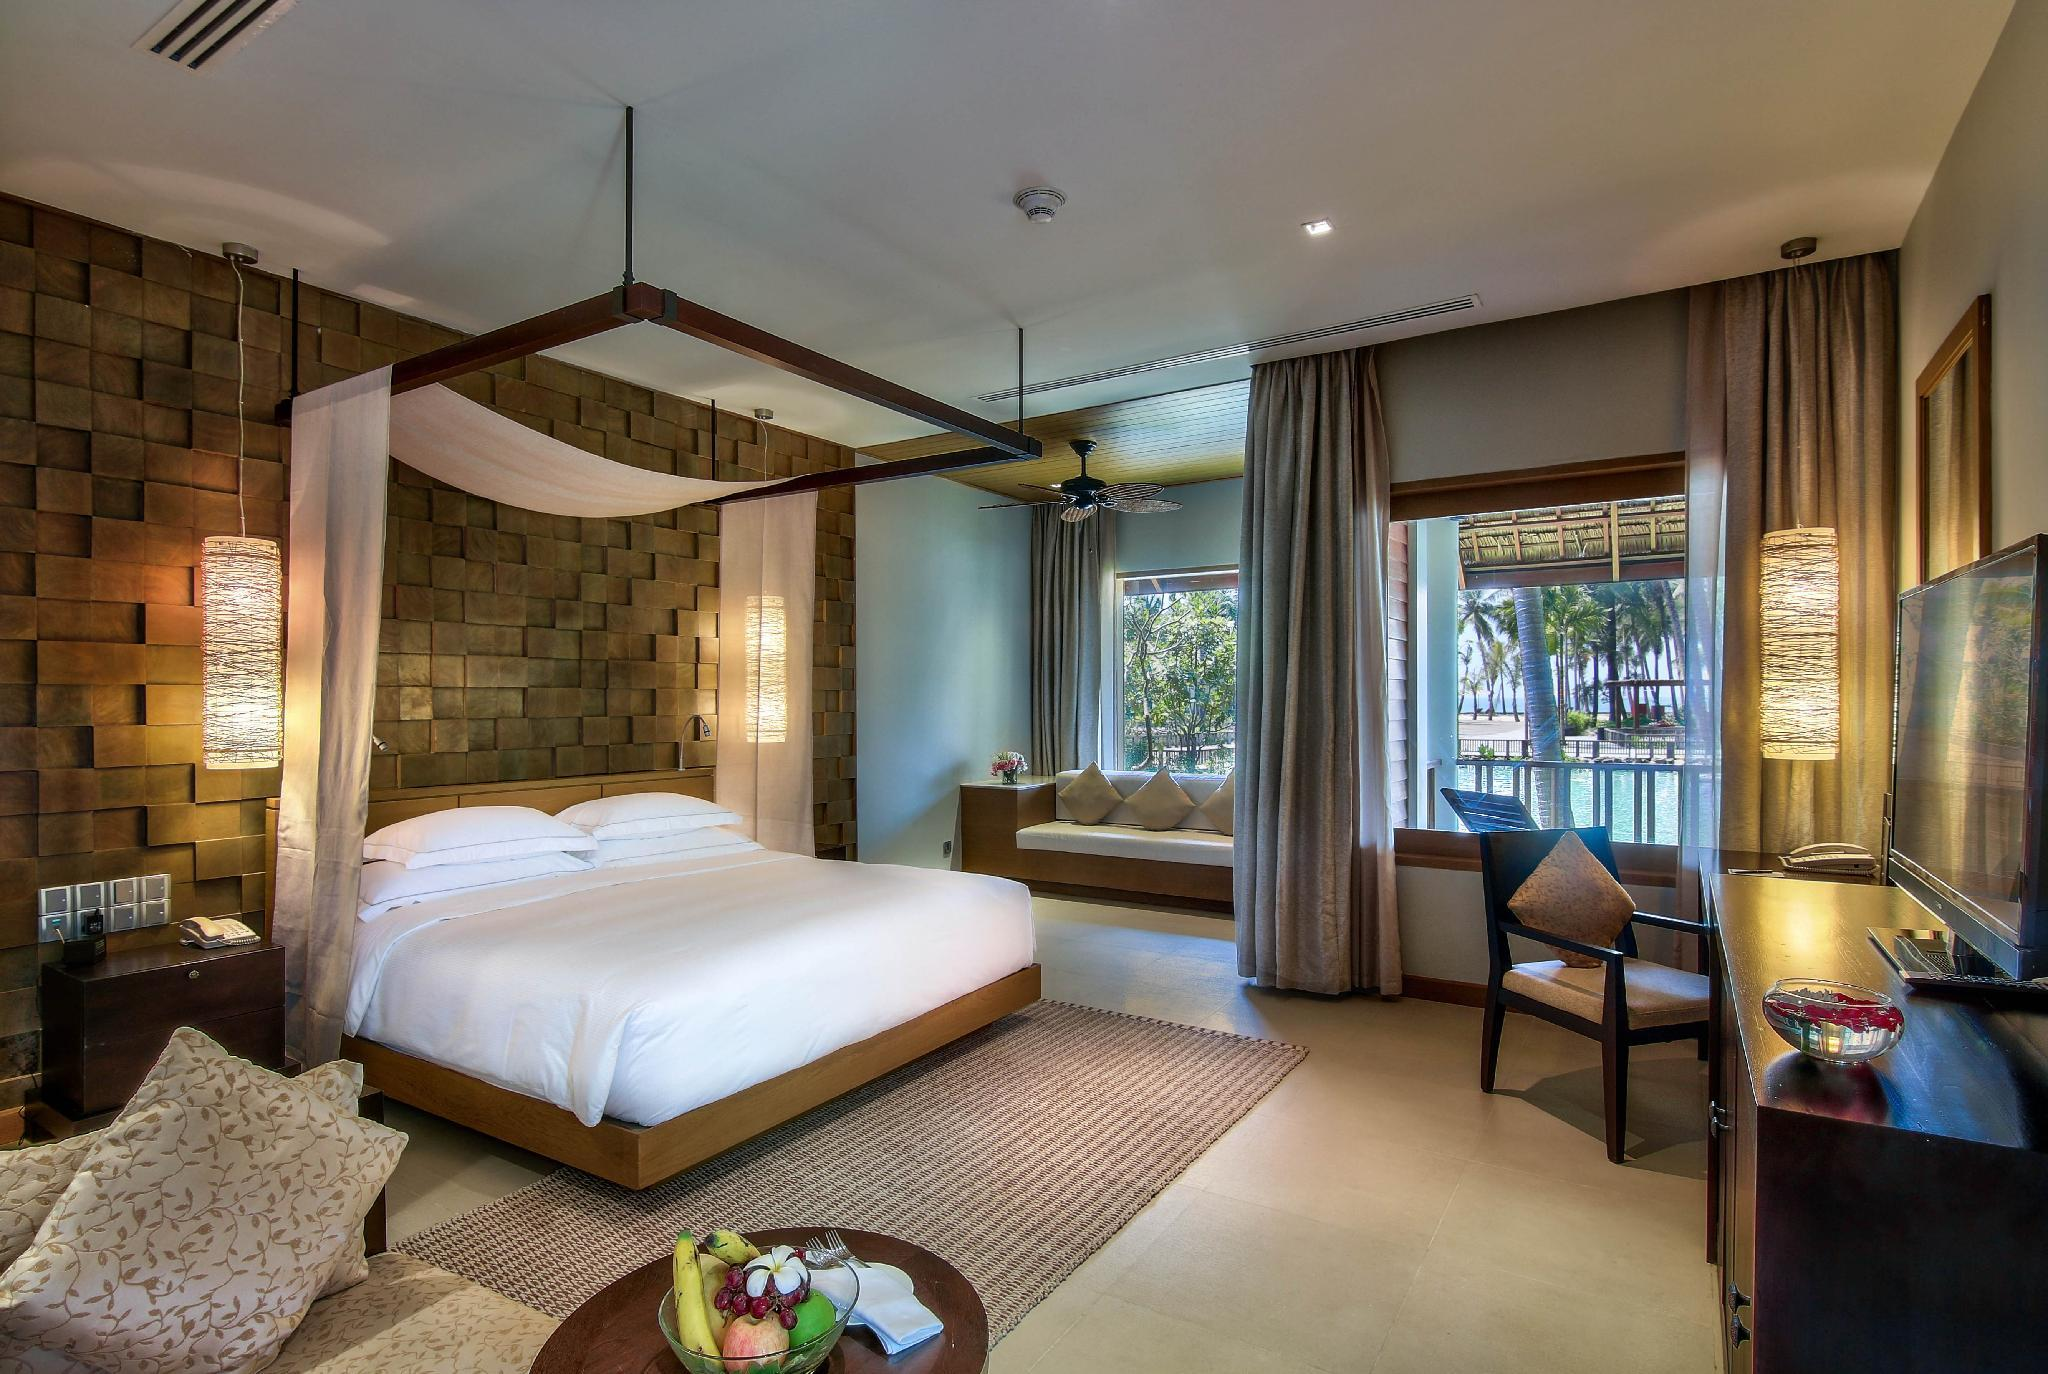 King Deluxe Room With Lagoon View And Balcony